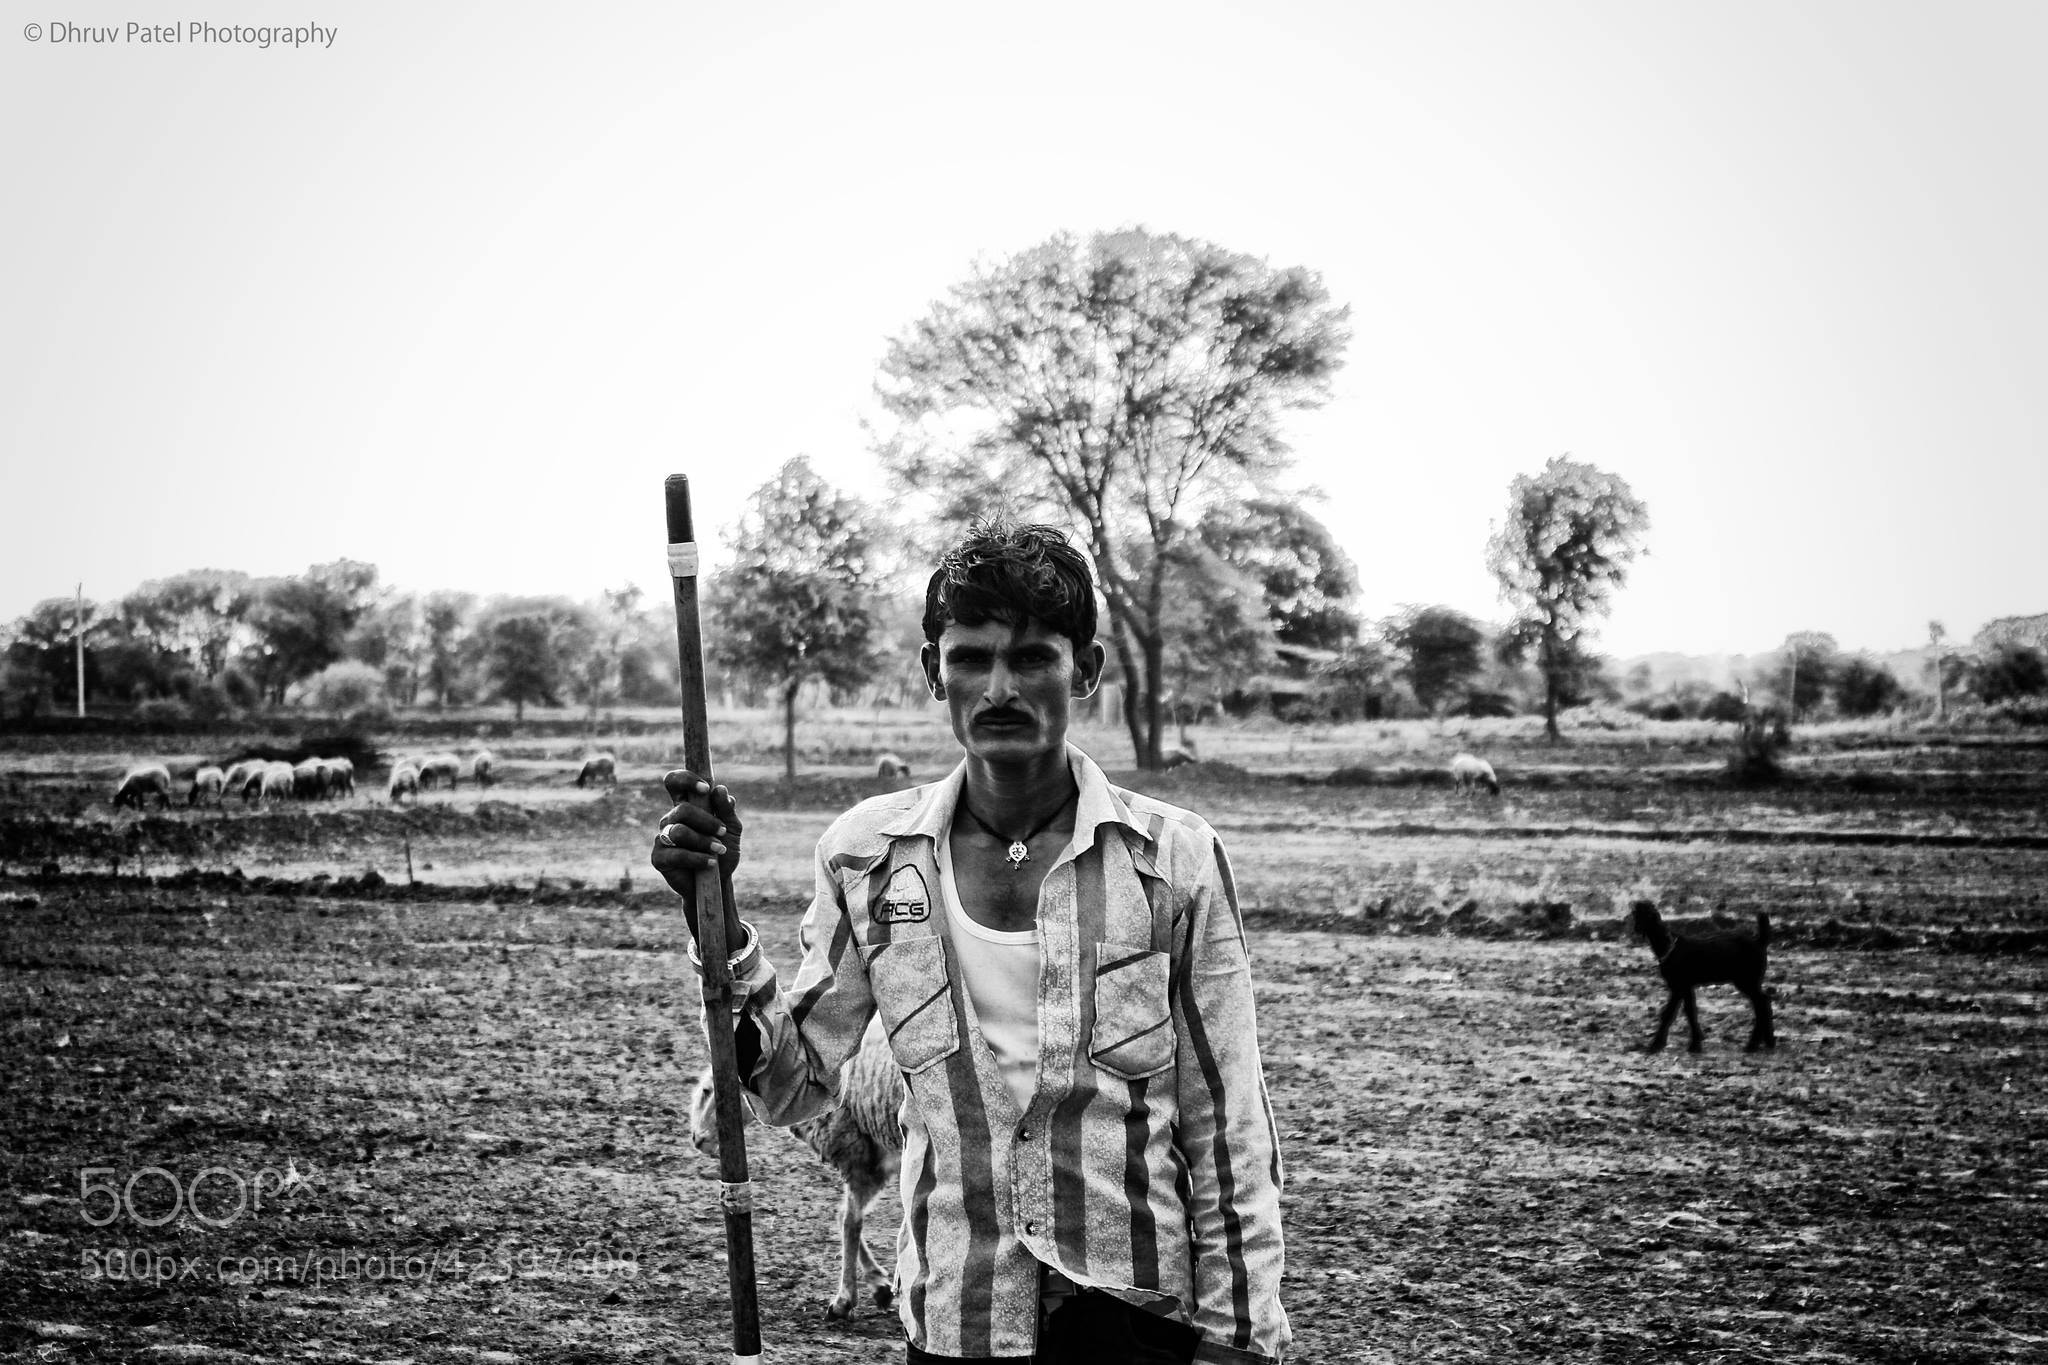 Photograph A Shepherd by Dhruv Patel on 500px